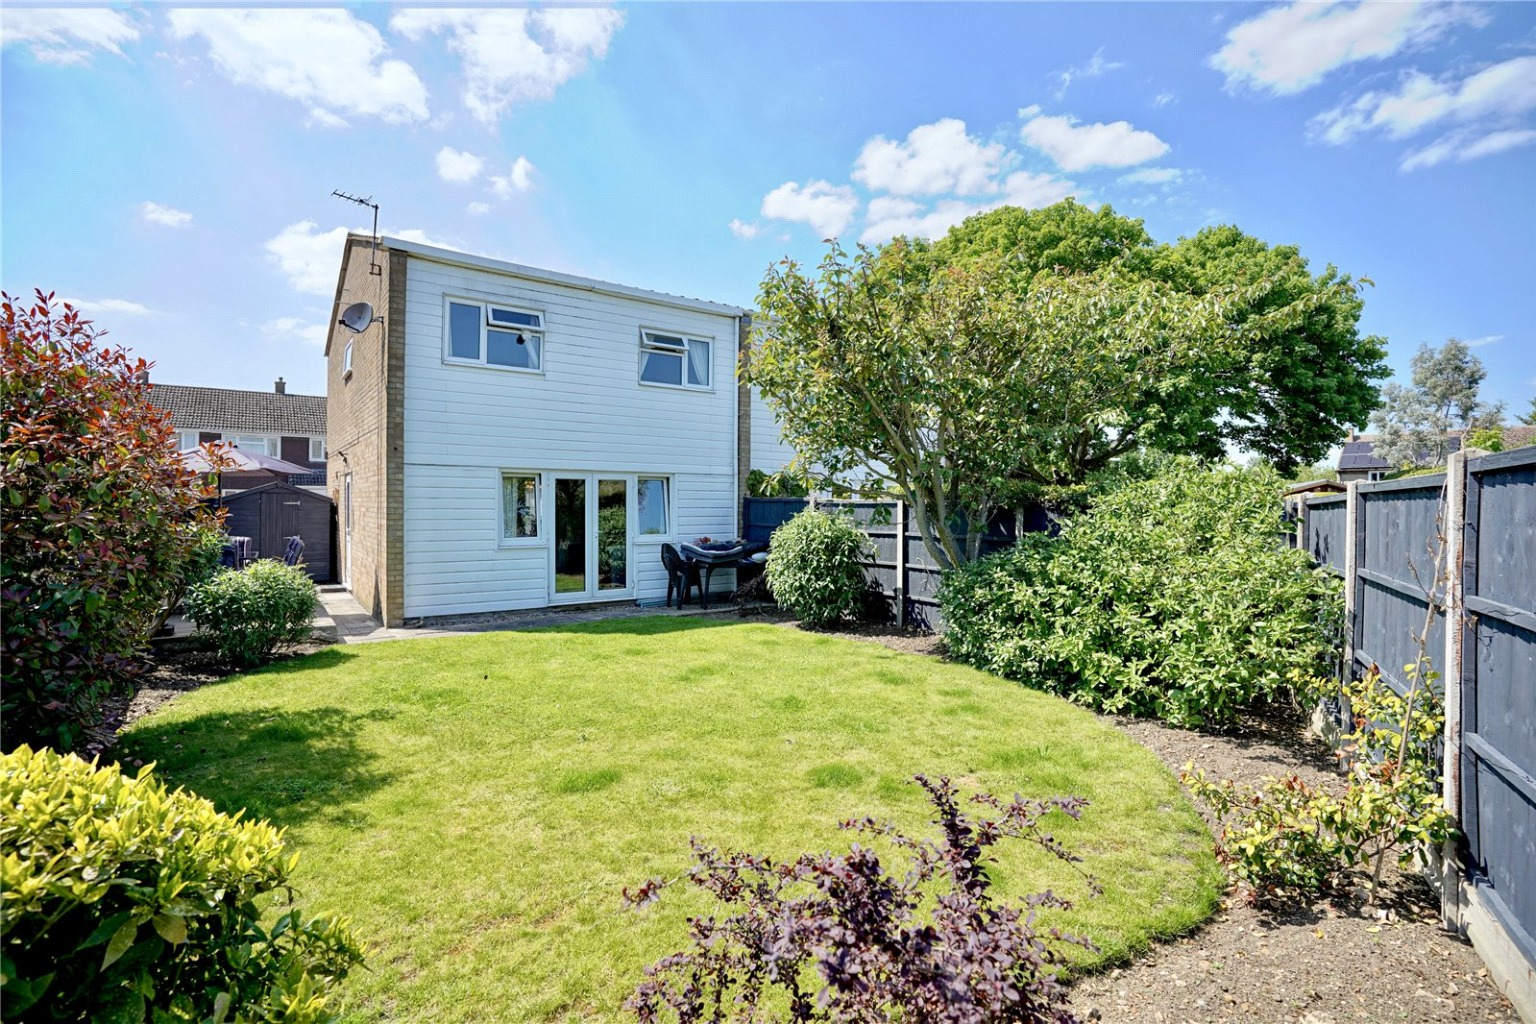 3 bed semi-detached house for sale in Gordon Road, St. Neots - Property Image 1